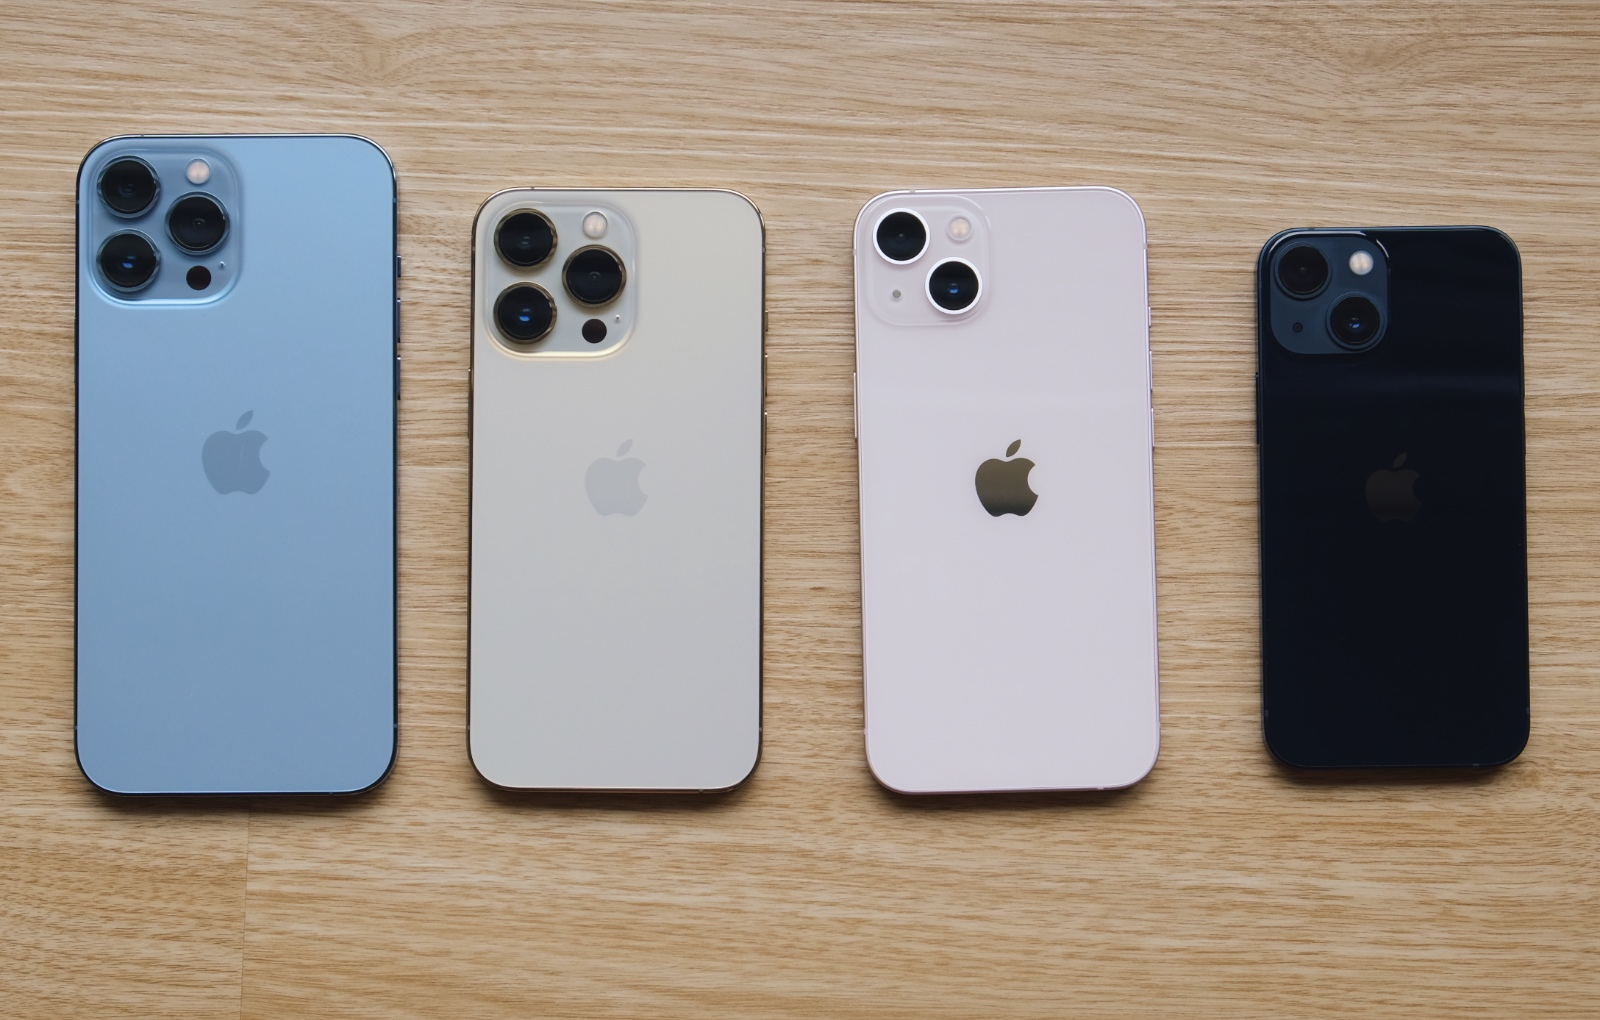 From left to right: iPhone 13 Pro Max in Sierra Blue, iPhone 13 Pro in Gold, iPhone 13 in Pink, and iPhone 13 Mini in Midnight.